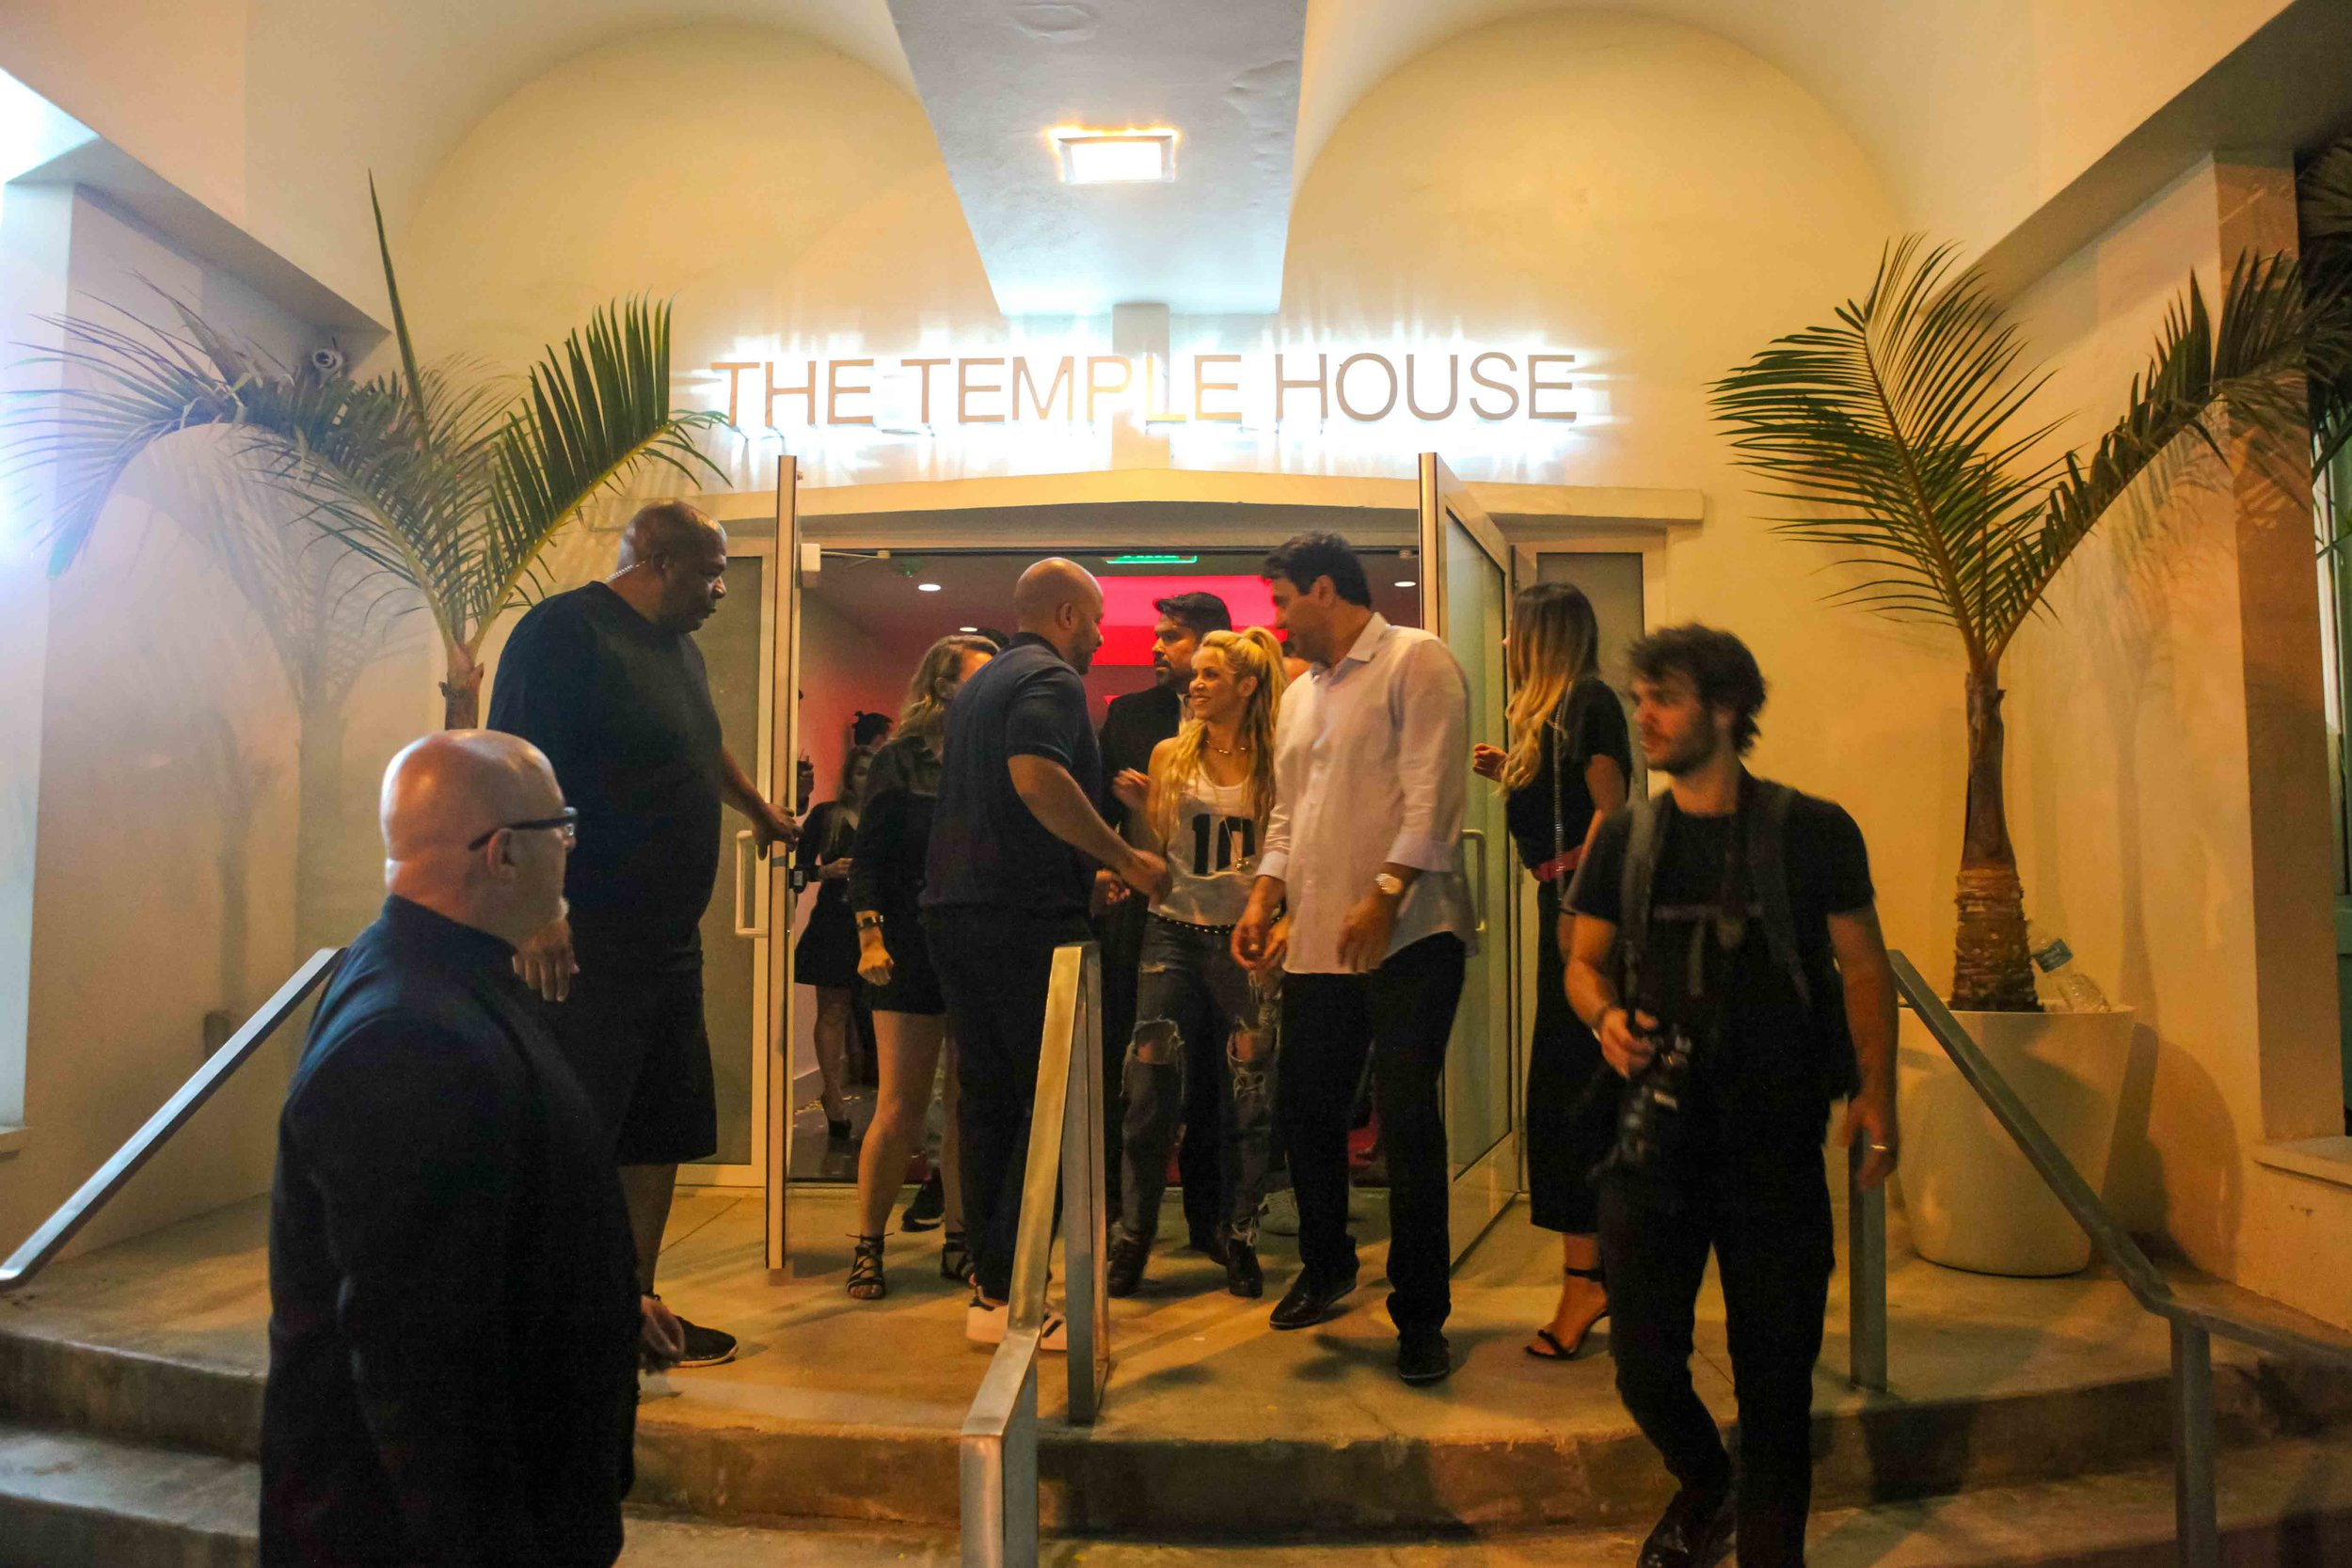 the_temple_house_events_celebrity__page-19.jpg